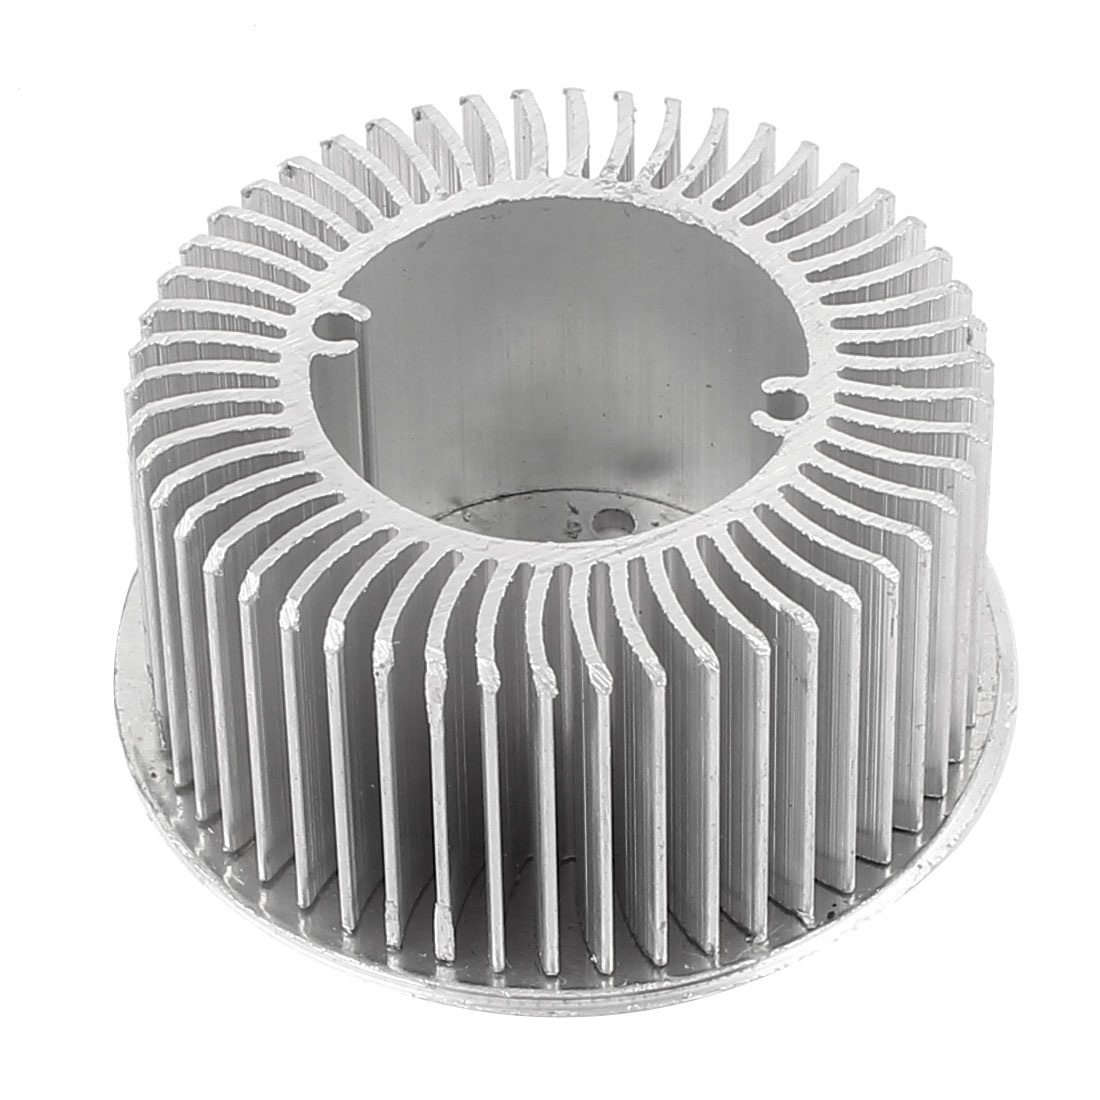 50mm x 25mm Cylinder 4W Power LED Heatsink Aluminium Cooling Fin